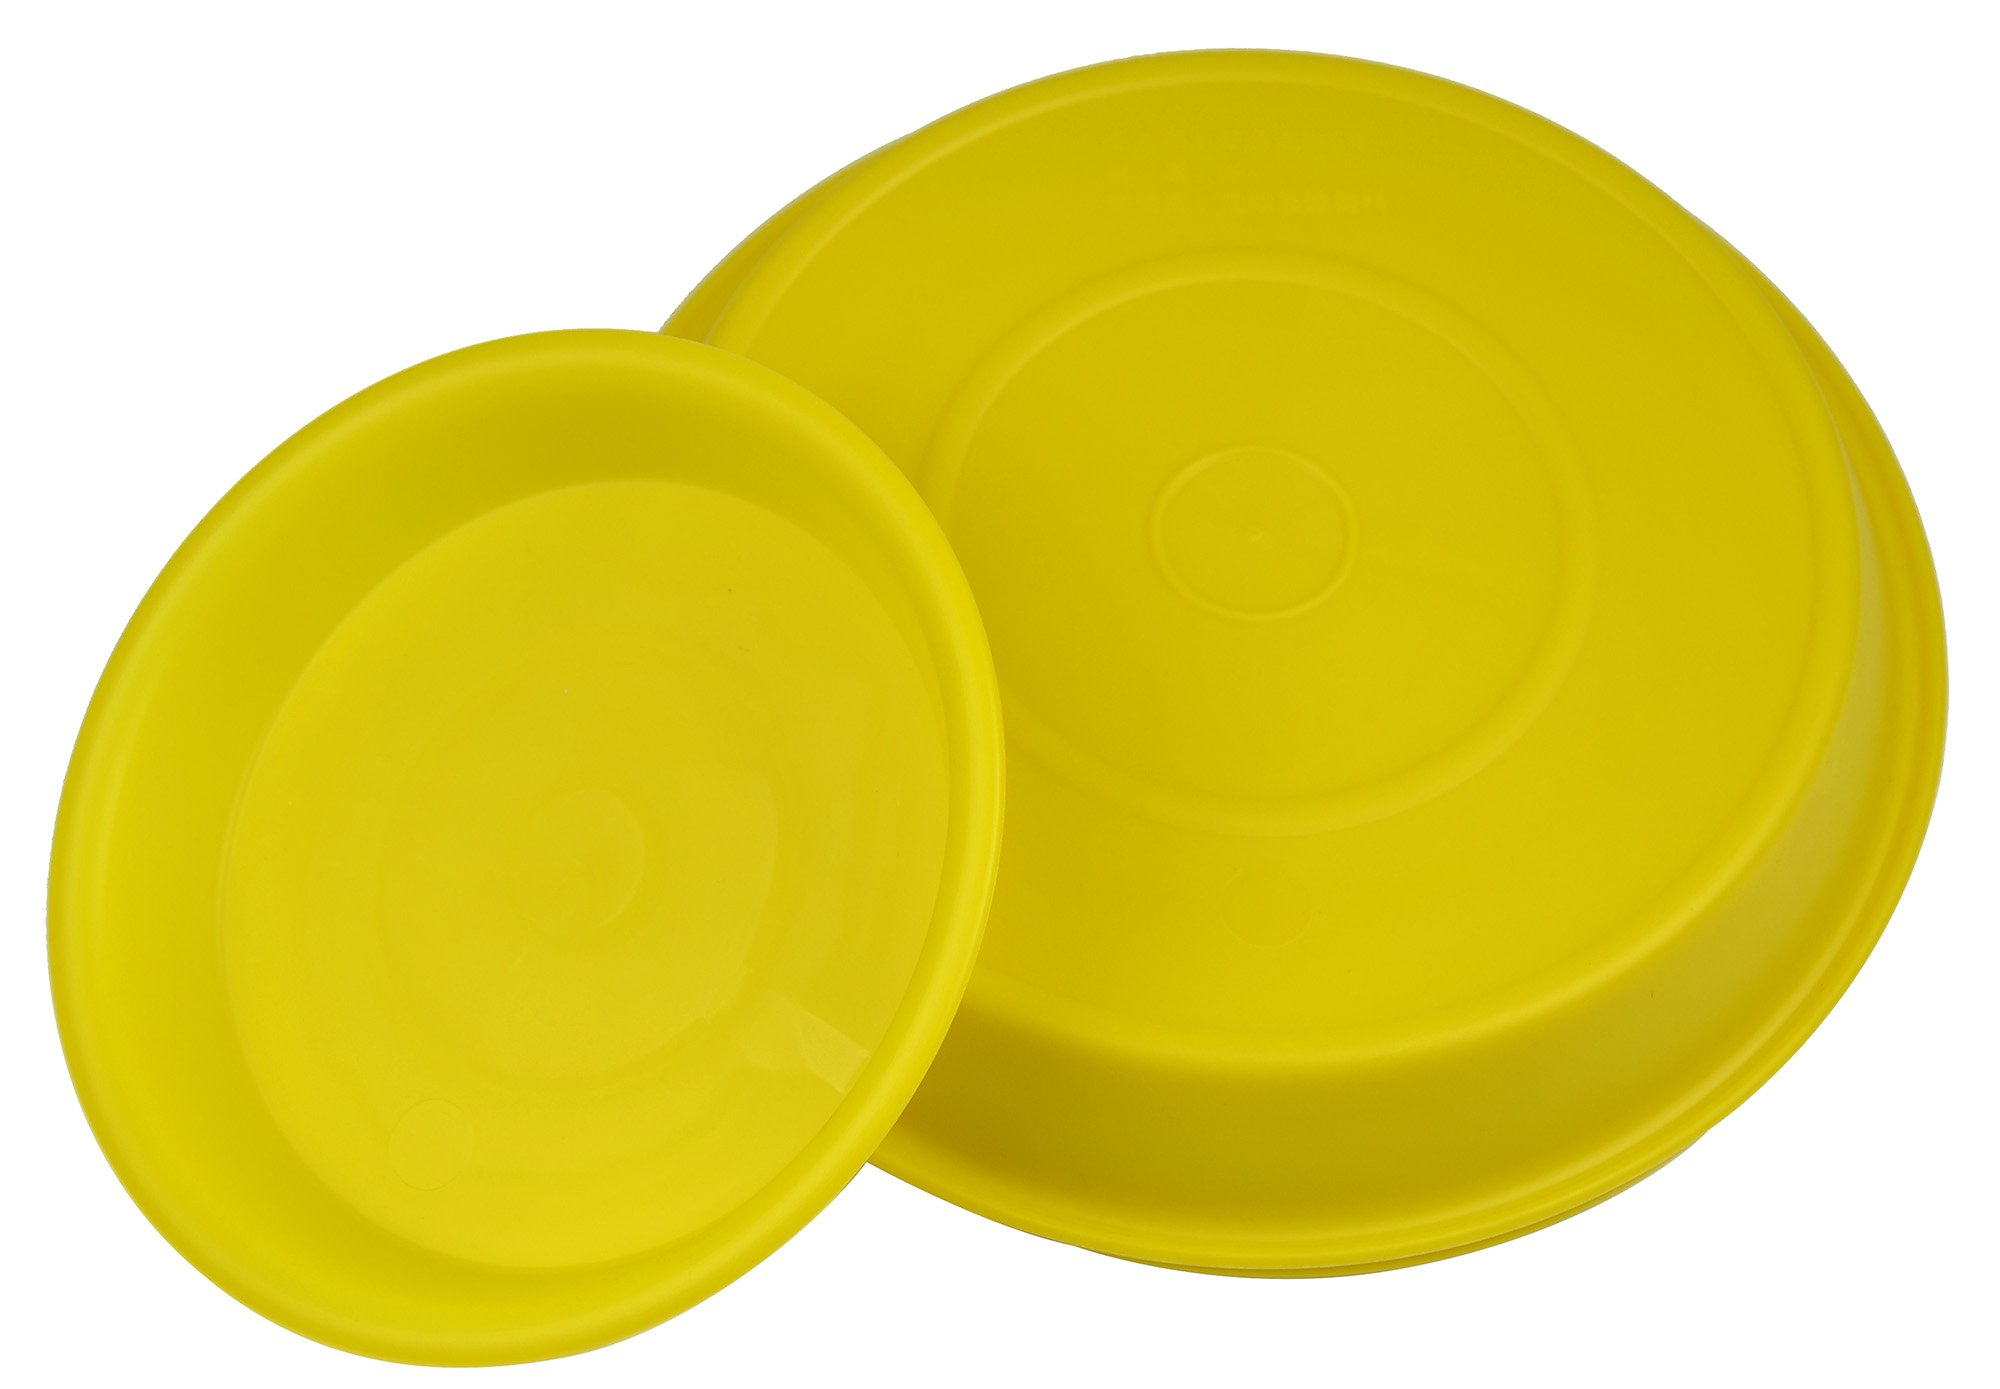 8.5'' Round Plant Saucer Planter Tray Pat Pallet for Flowerpot,Yellow,900 Count by Zhanwang (Image #2)